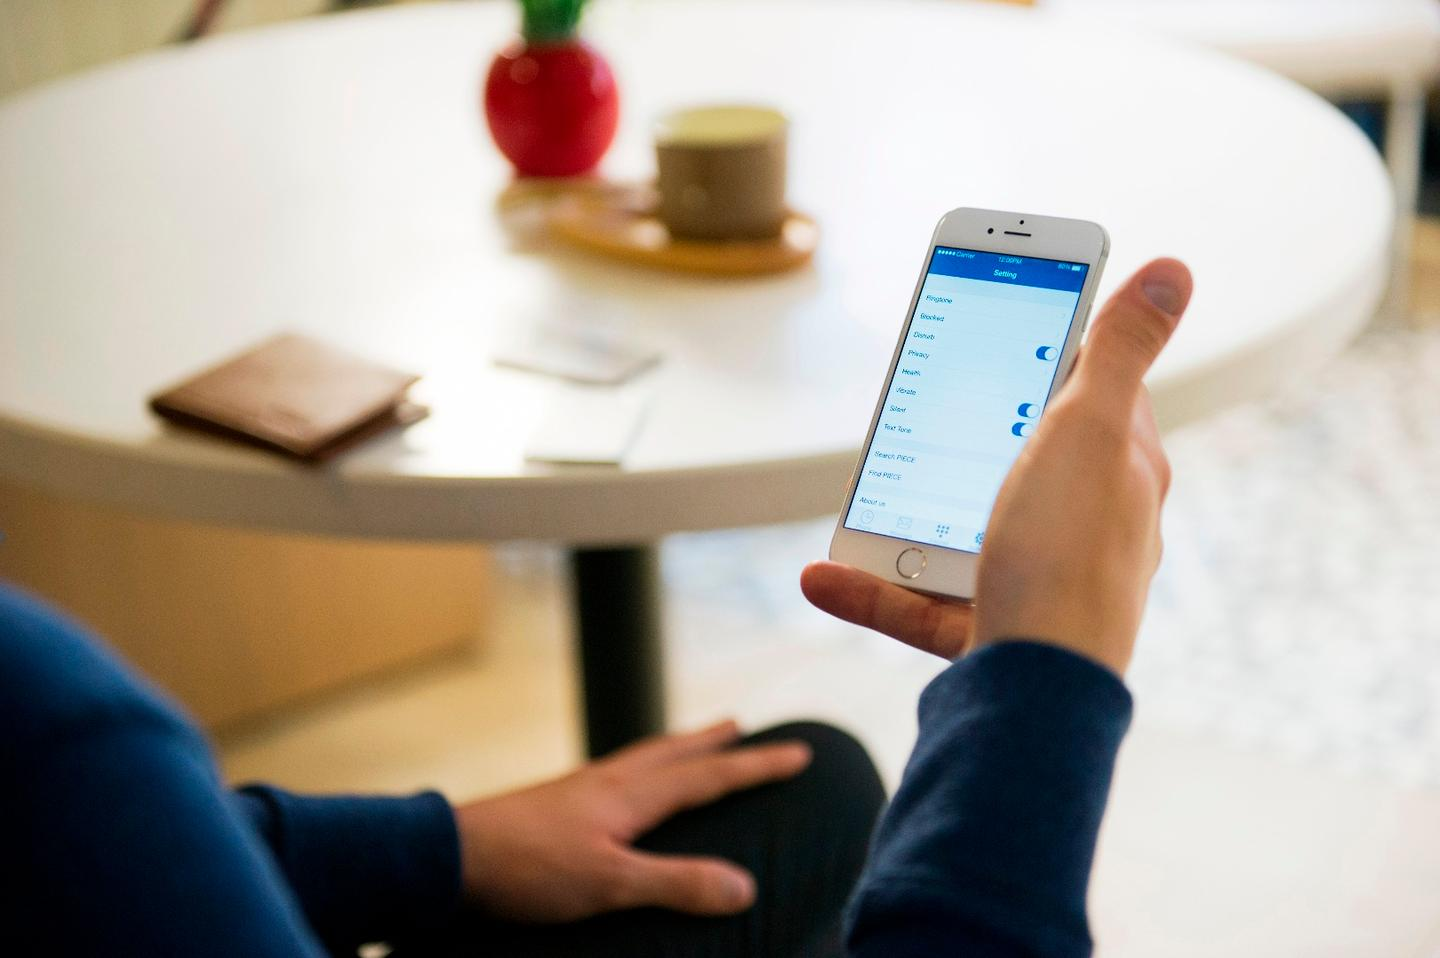 Piece allows users to make calls and send text messages from two SIM cards via a single hanset